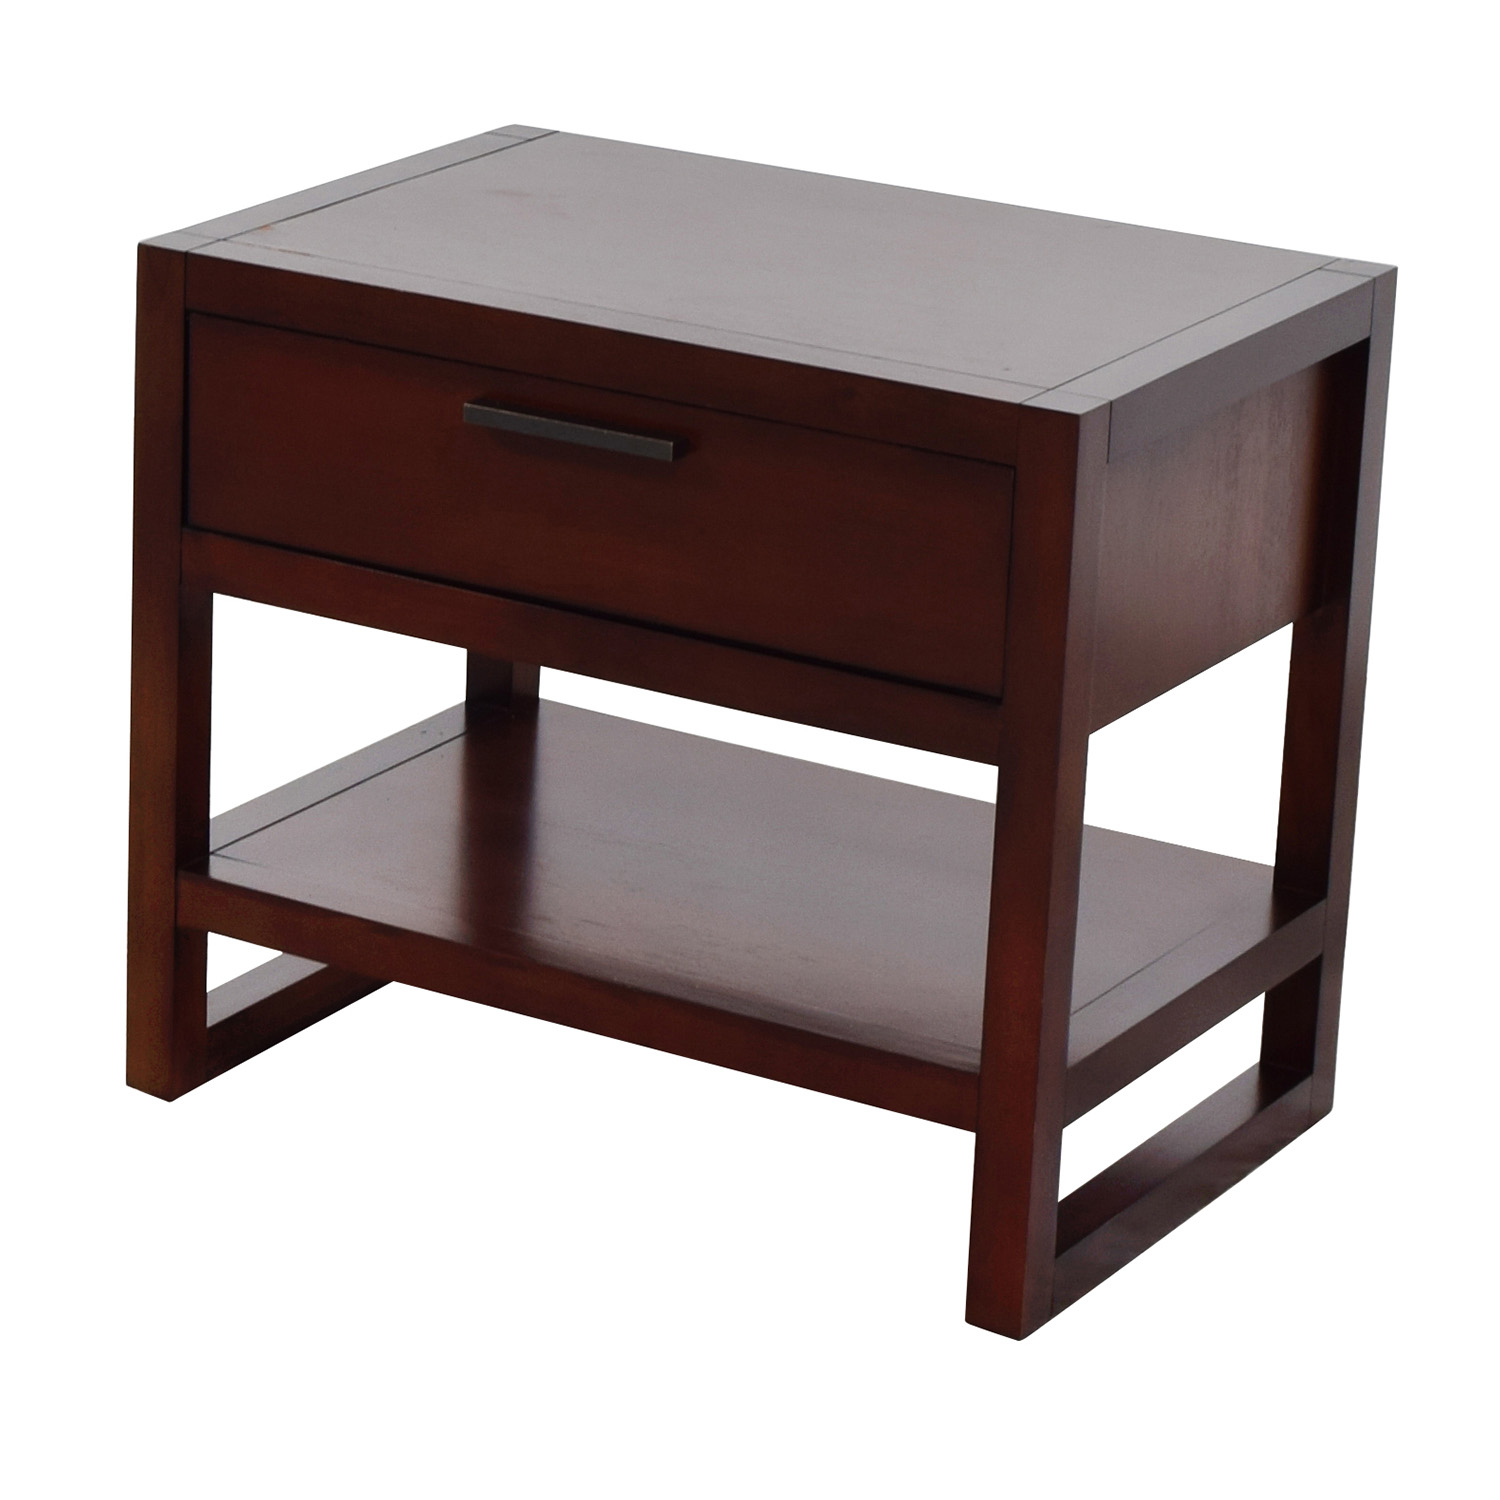 Macys Battery Park Night Stand sale